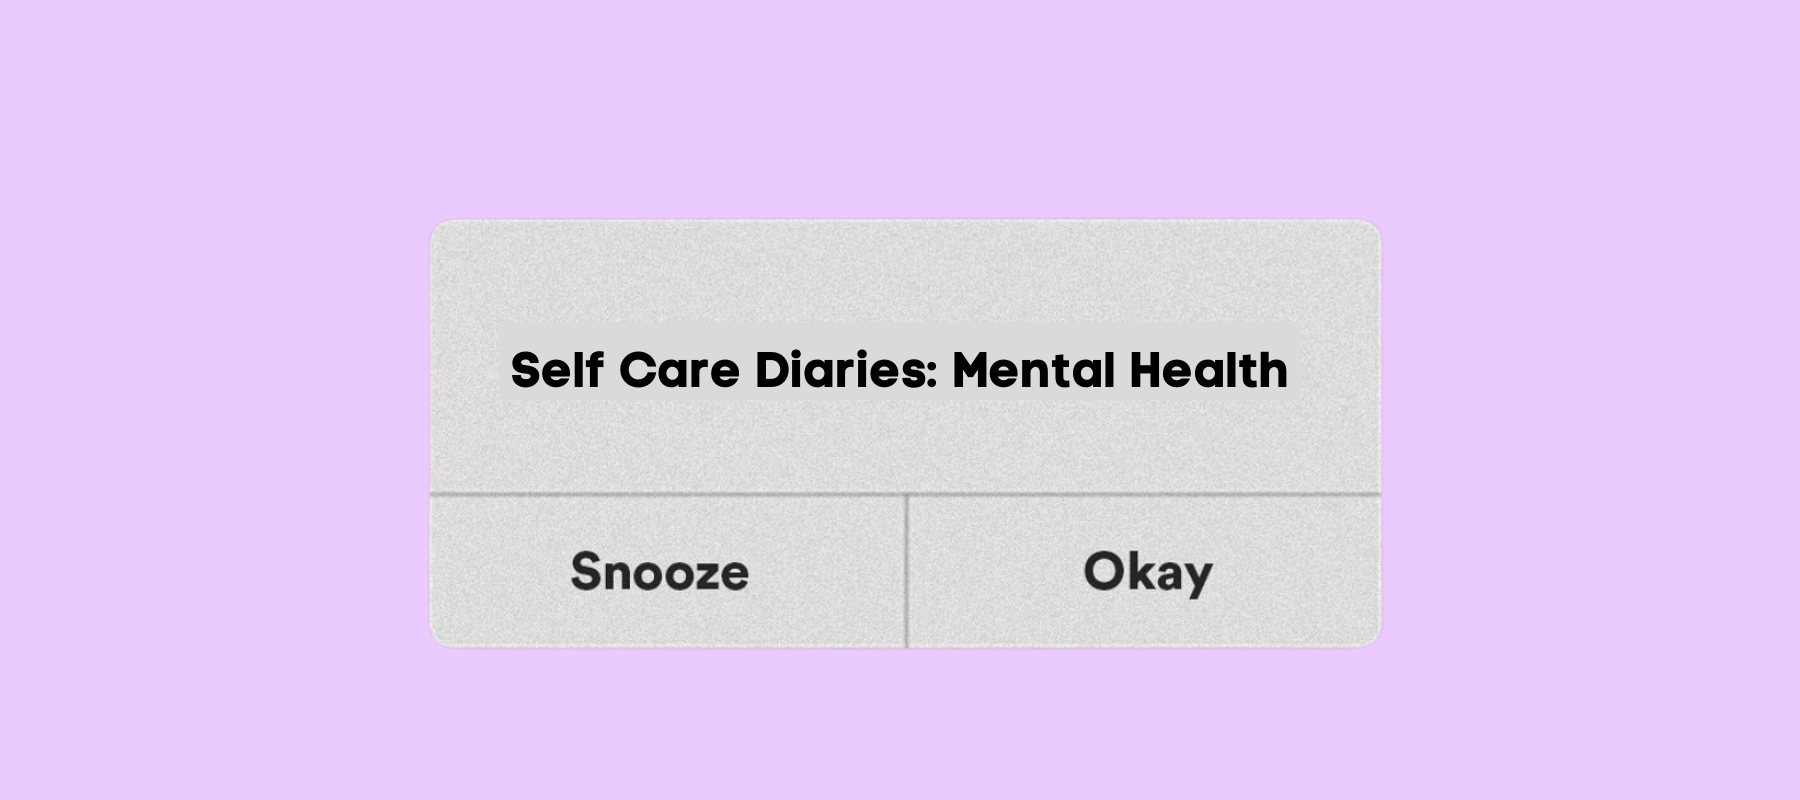 Self-Care Diaries: Mental Health